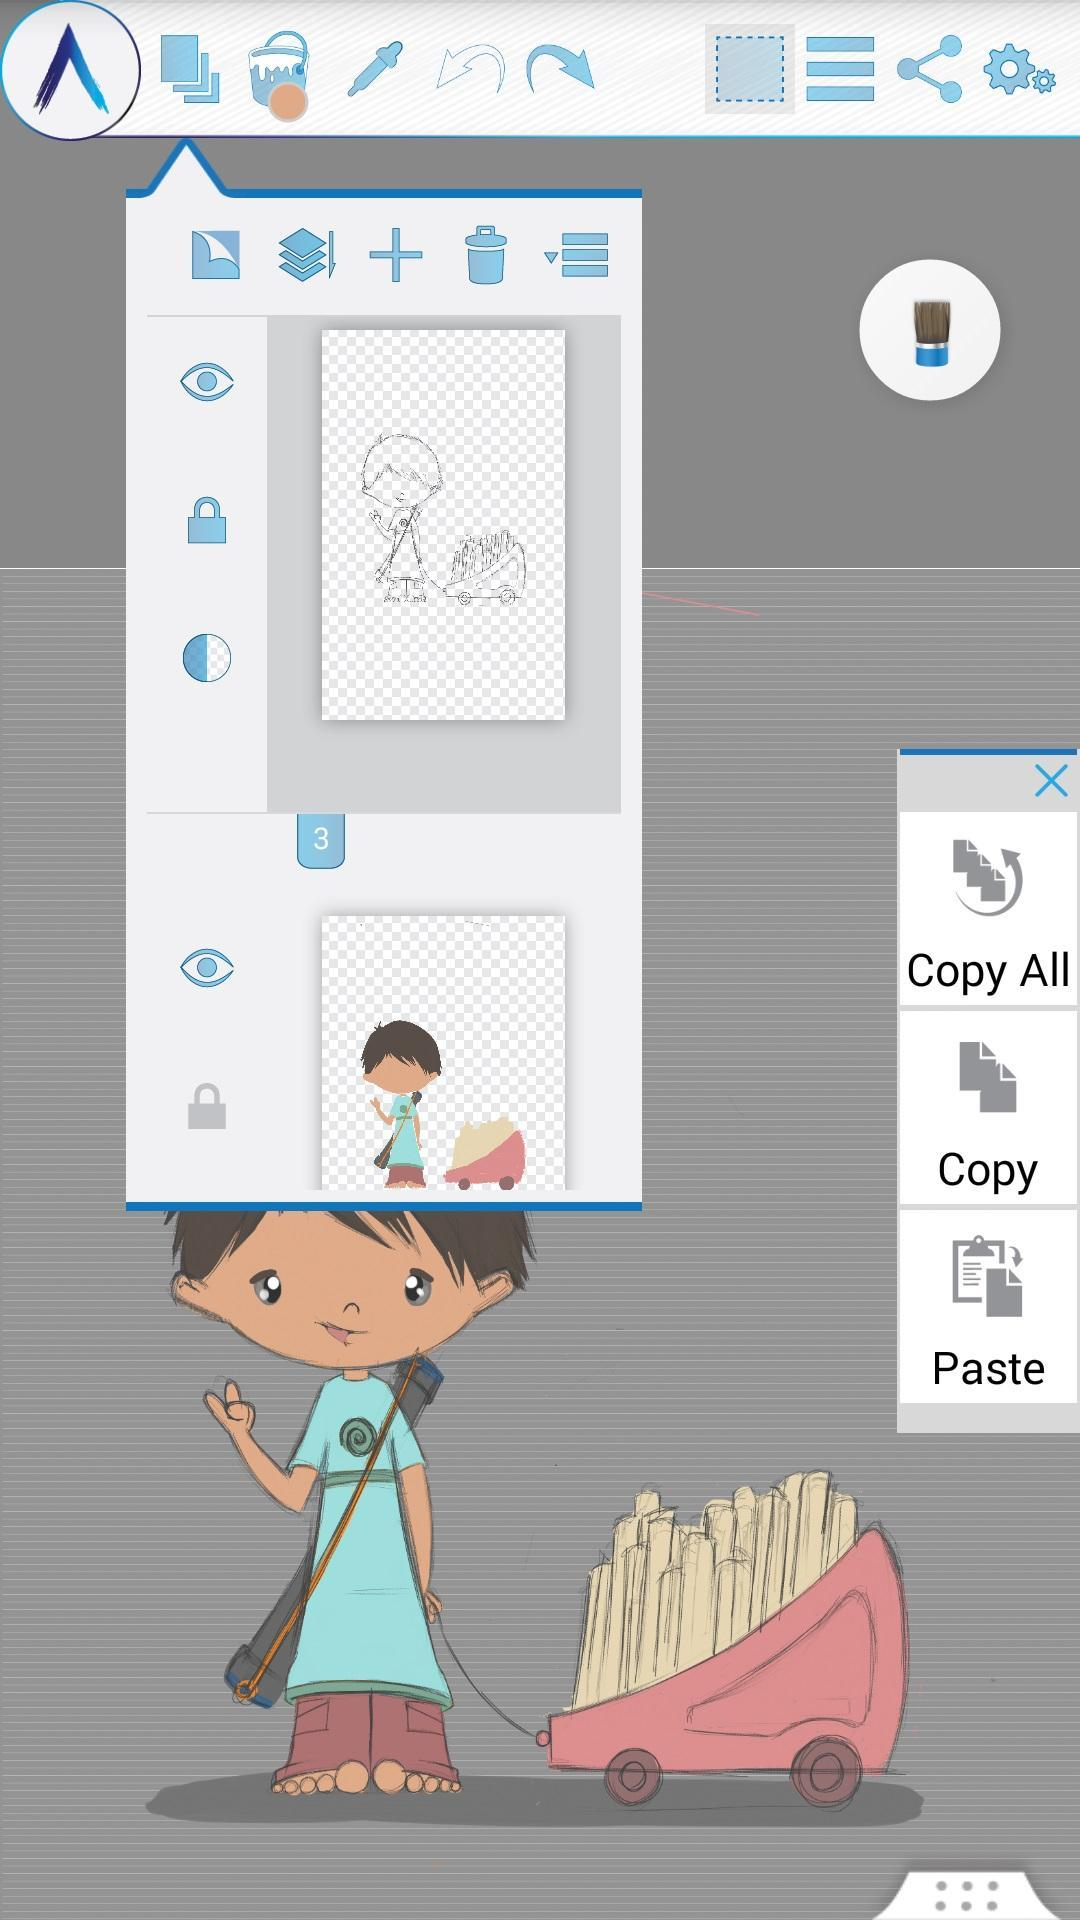 Artecture Draw, Sketch, Paint 5.2.0.4 Screenshot 2